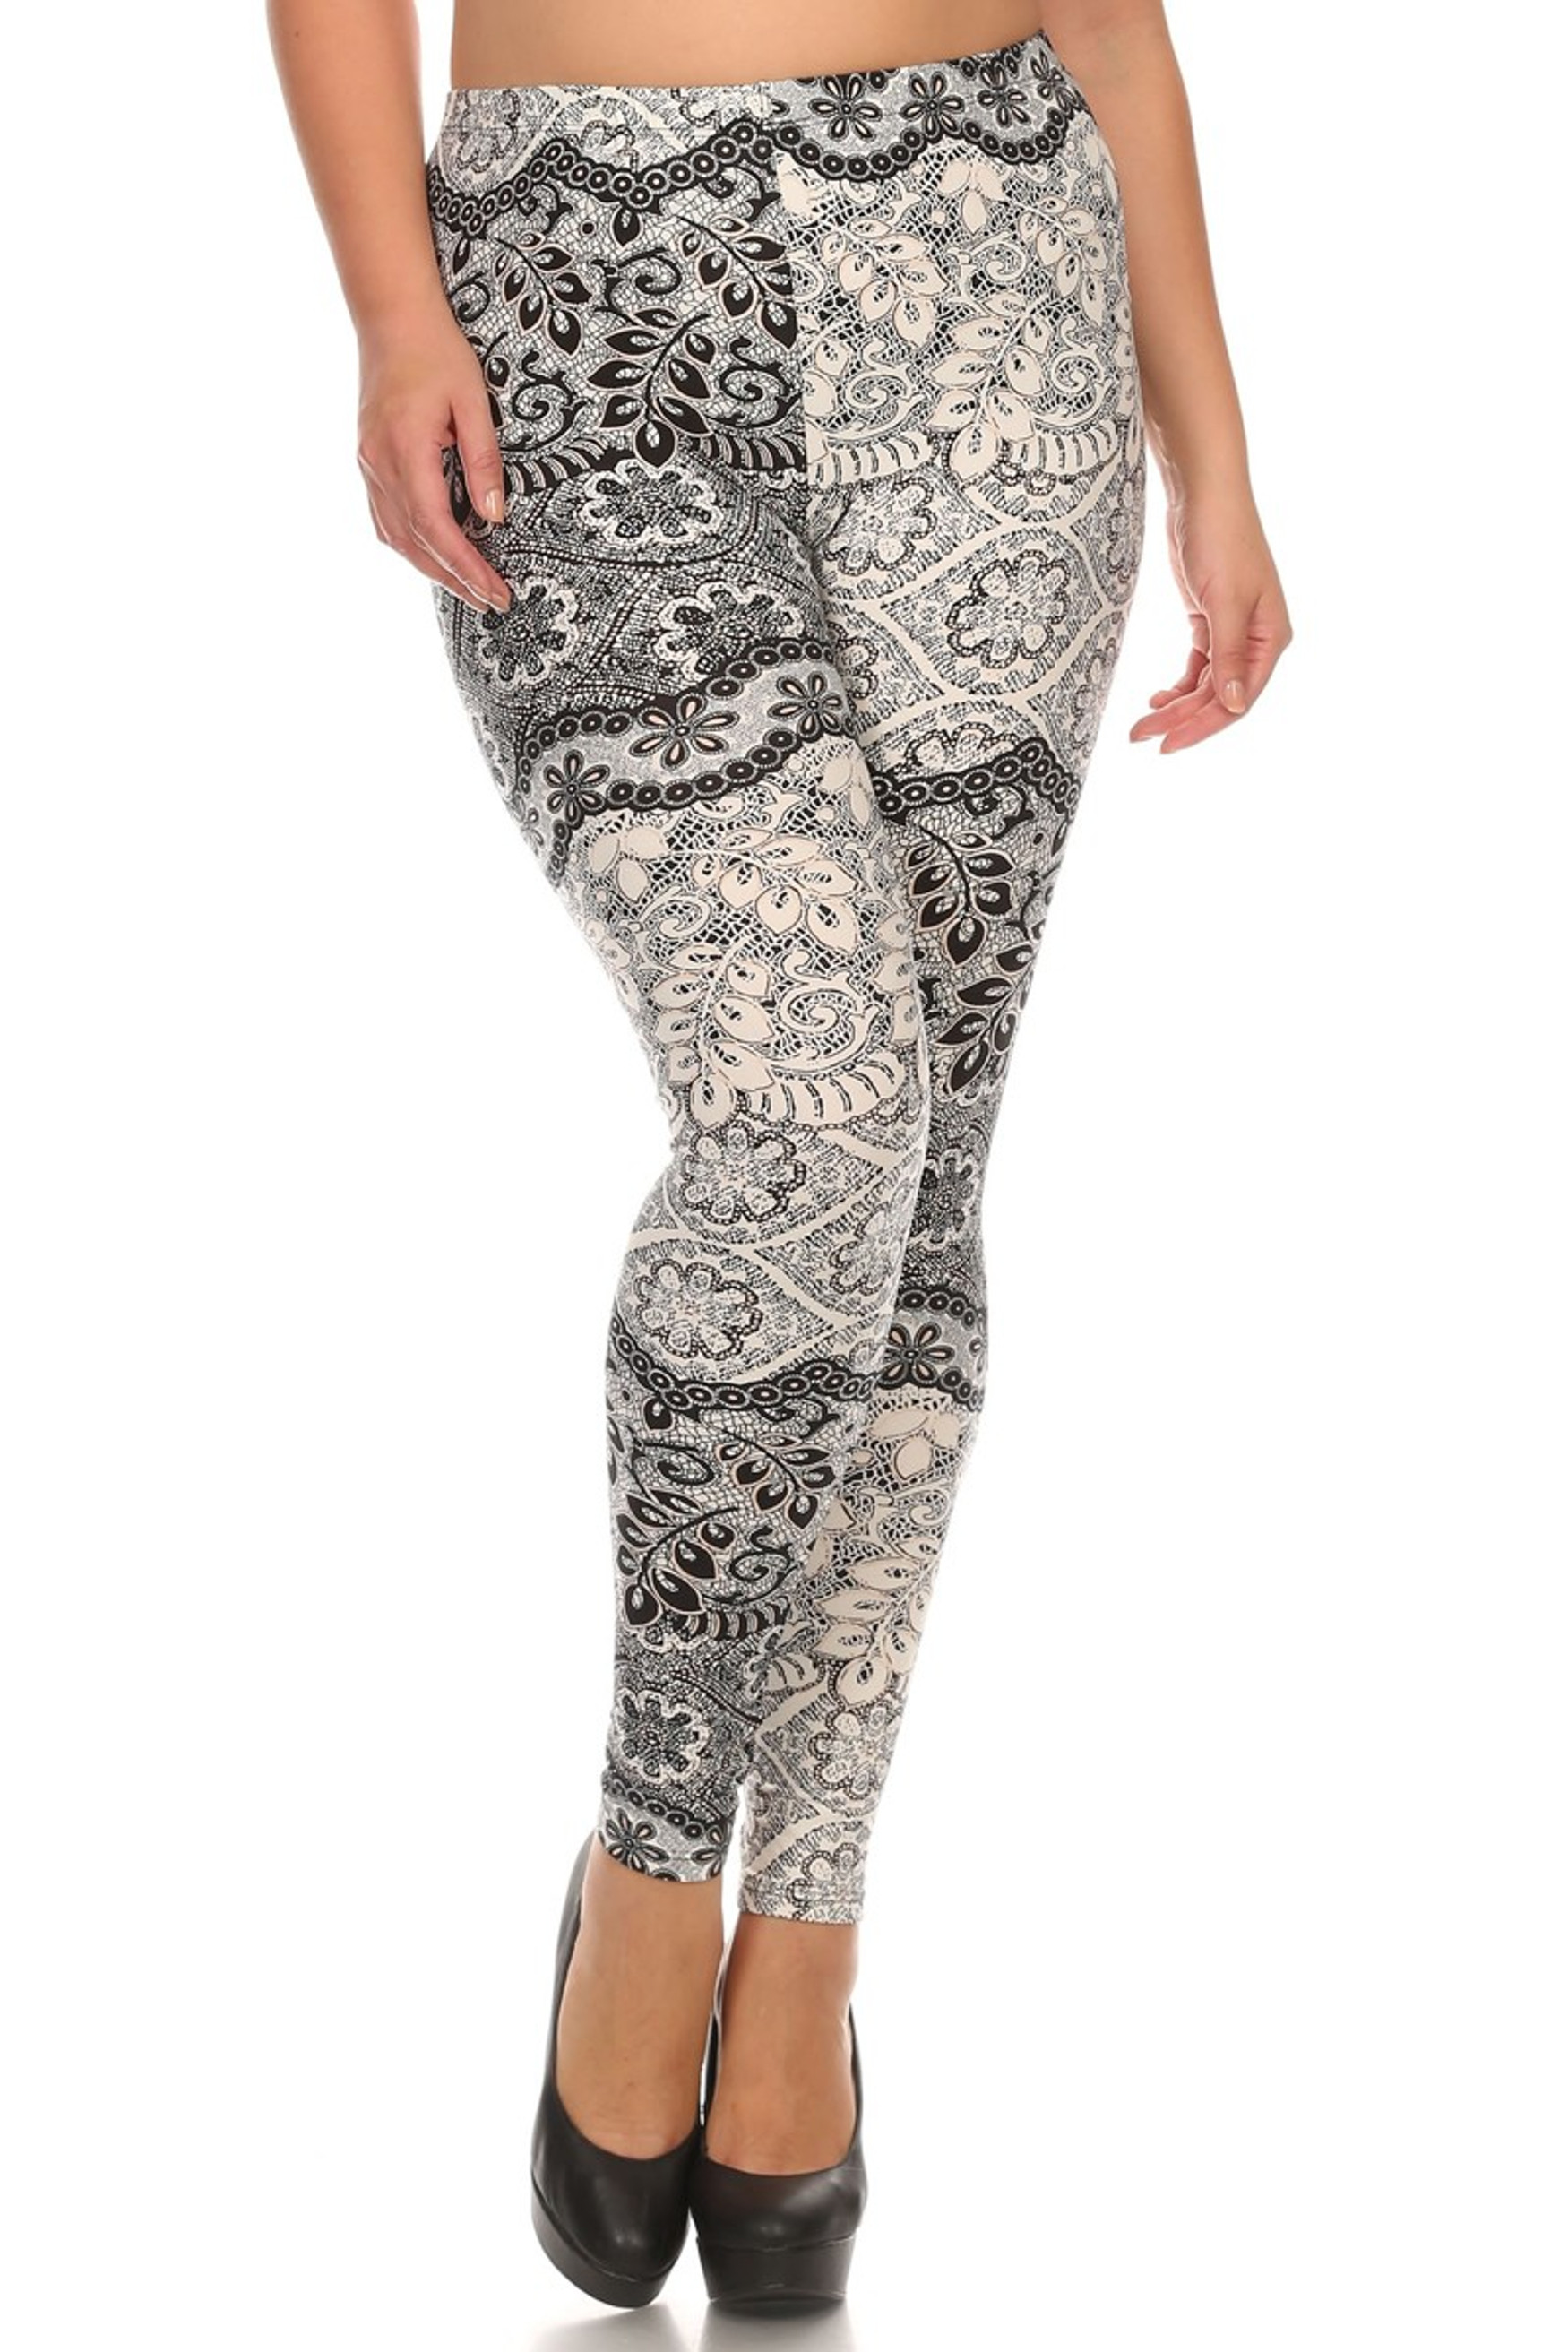 Front side image of Brushed Exquisite Leaf Plus Size Leggings - 3X - 5X